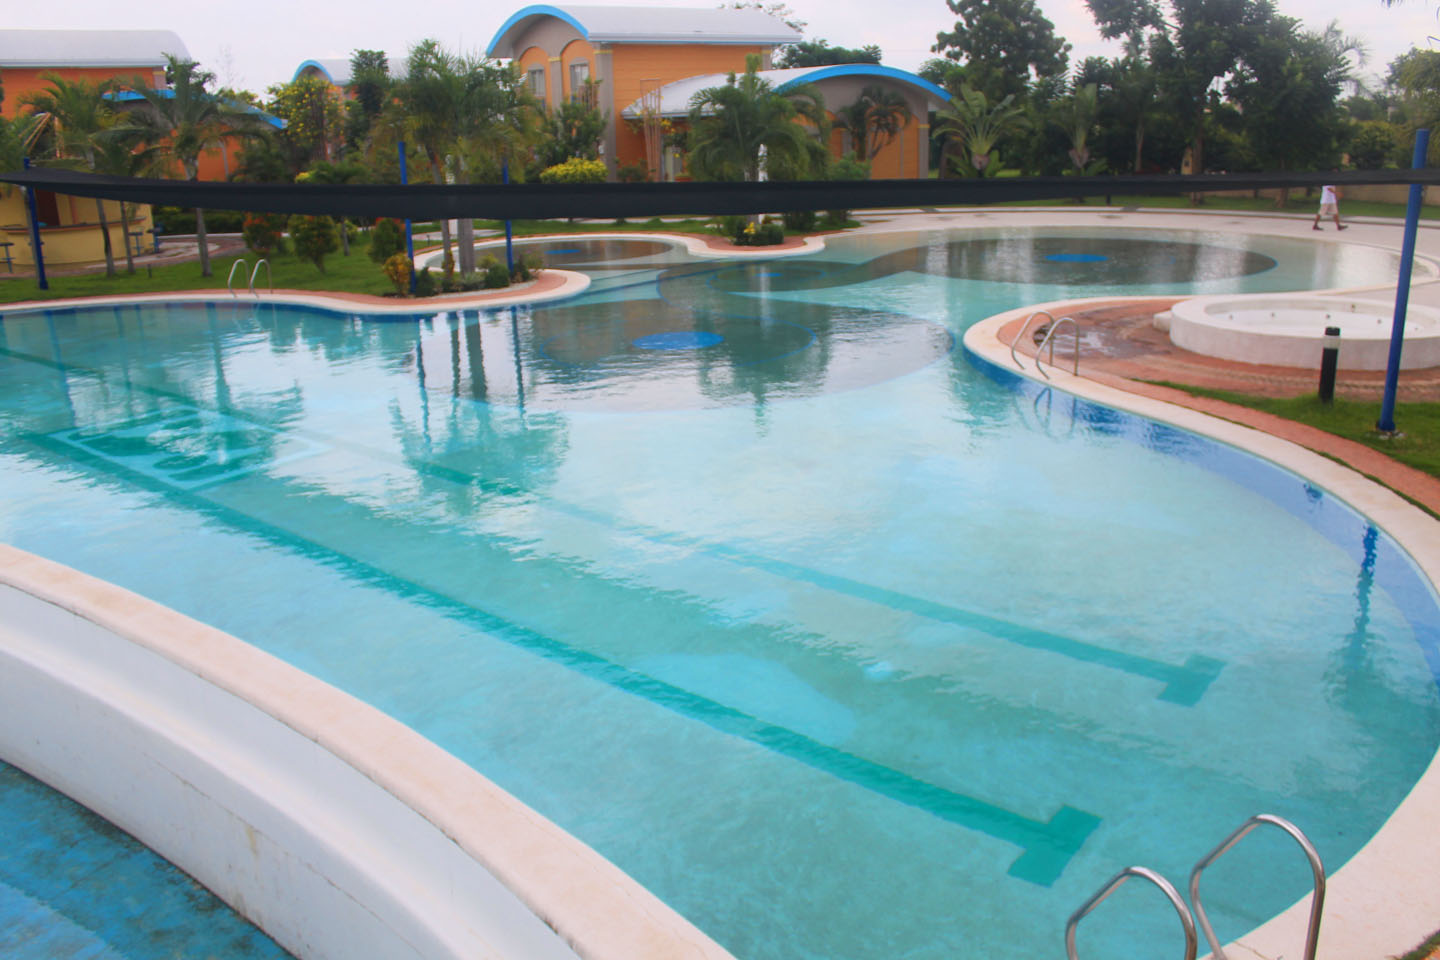 Acropolis_North_Clubhouse_Swimming_Pool_2.jpg